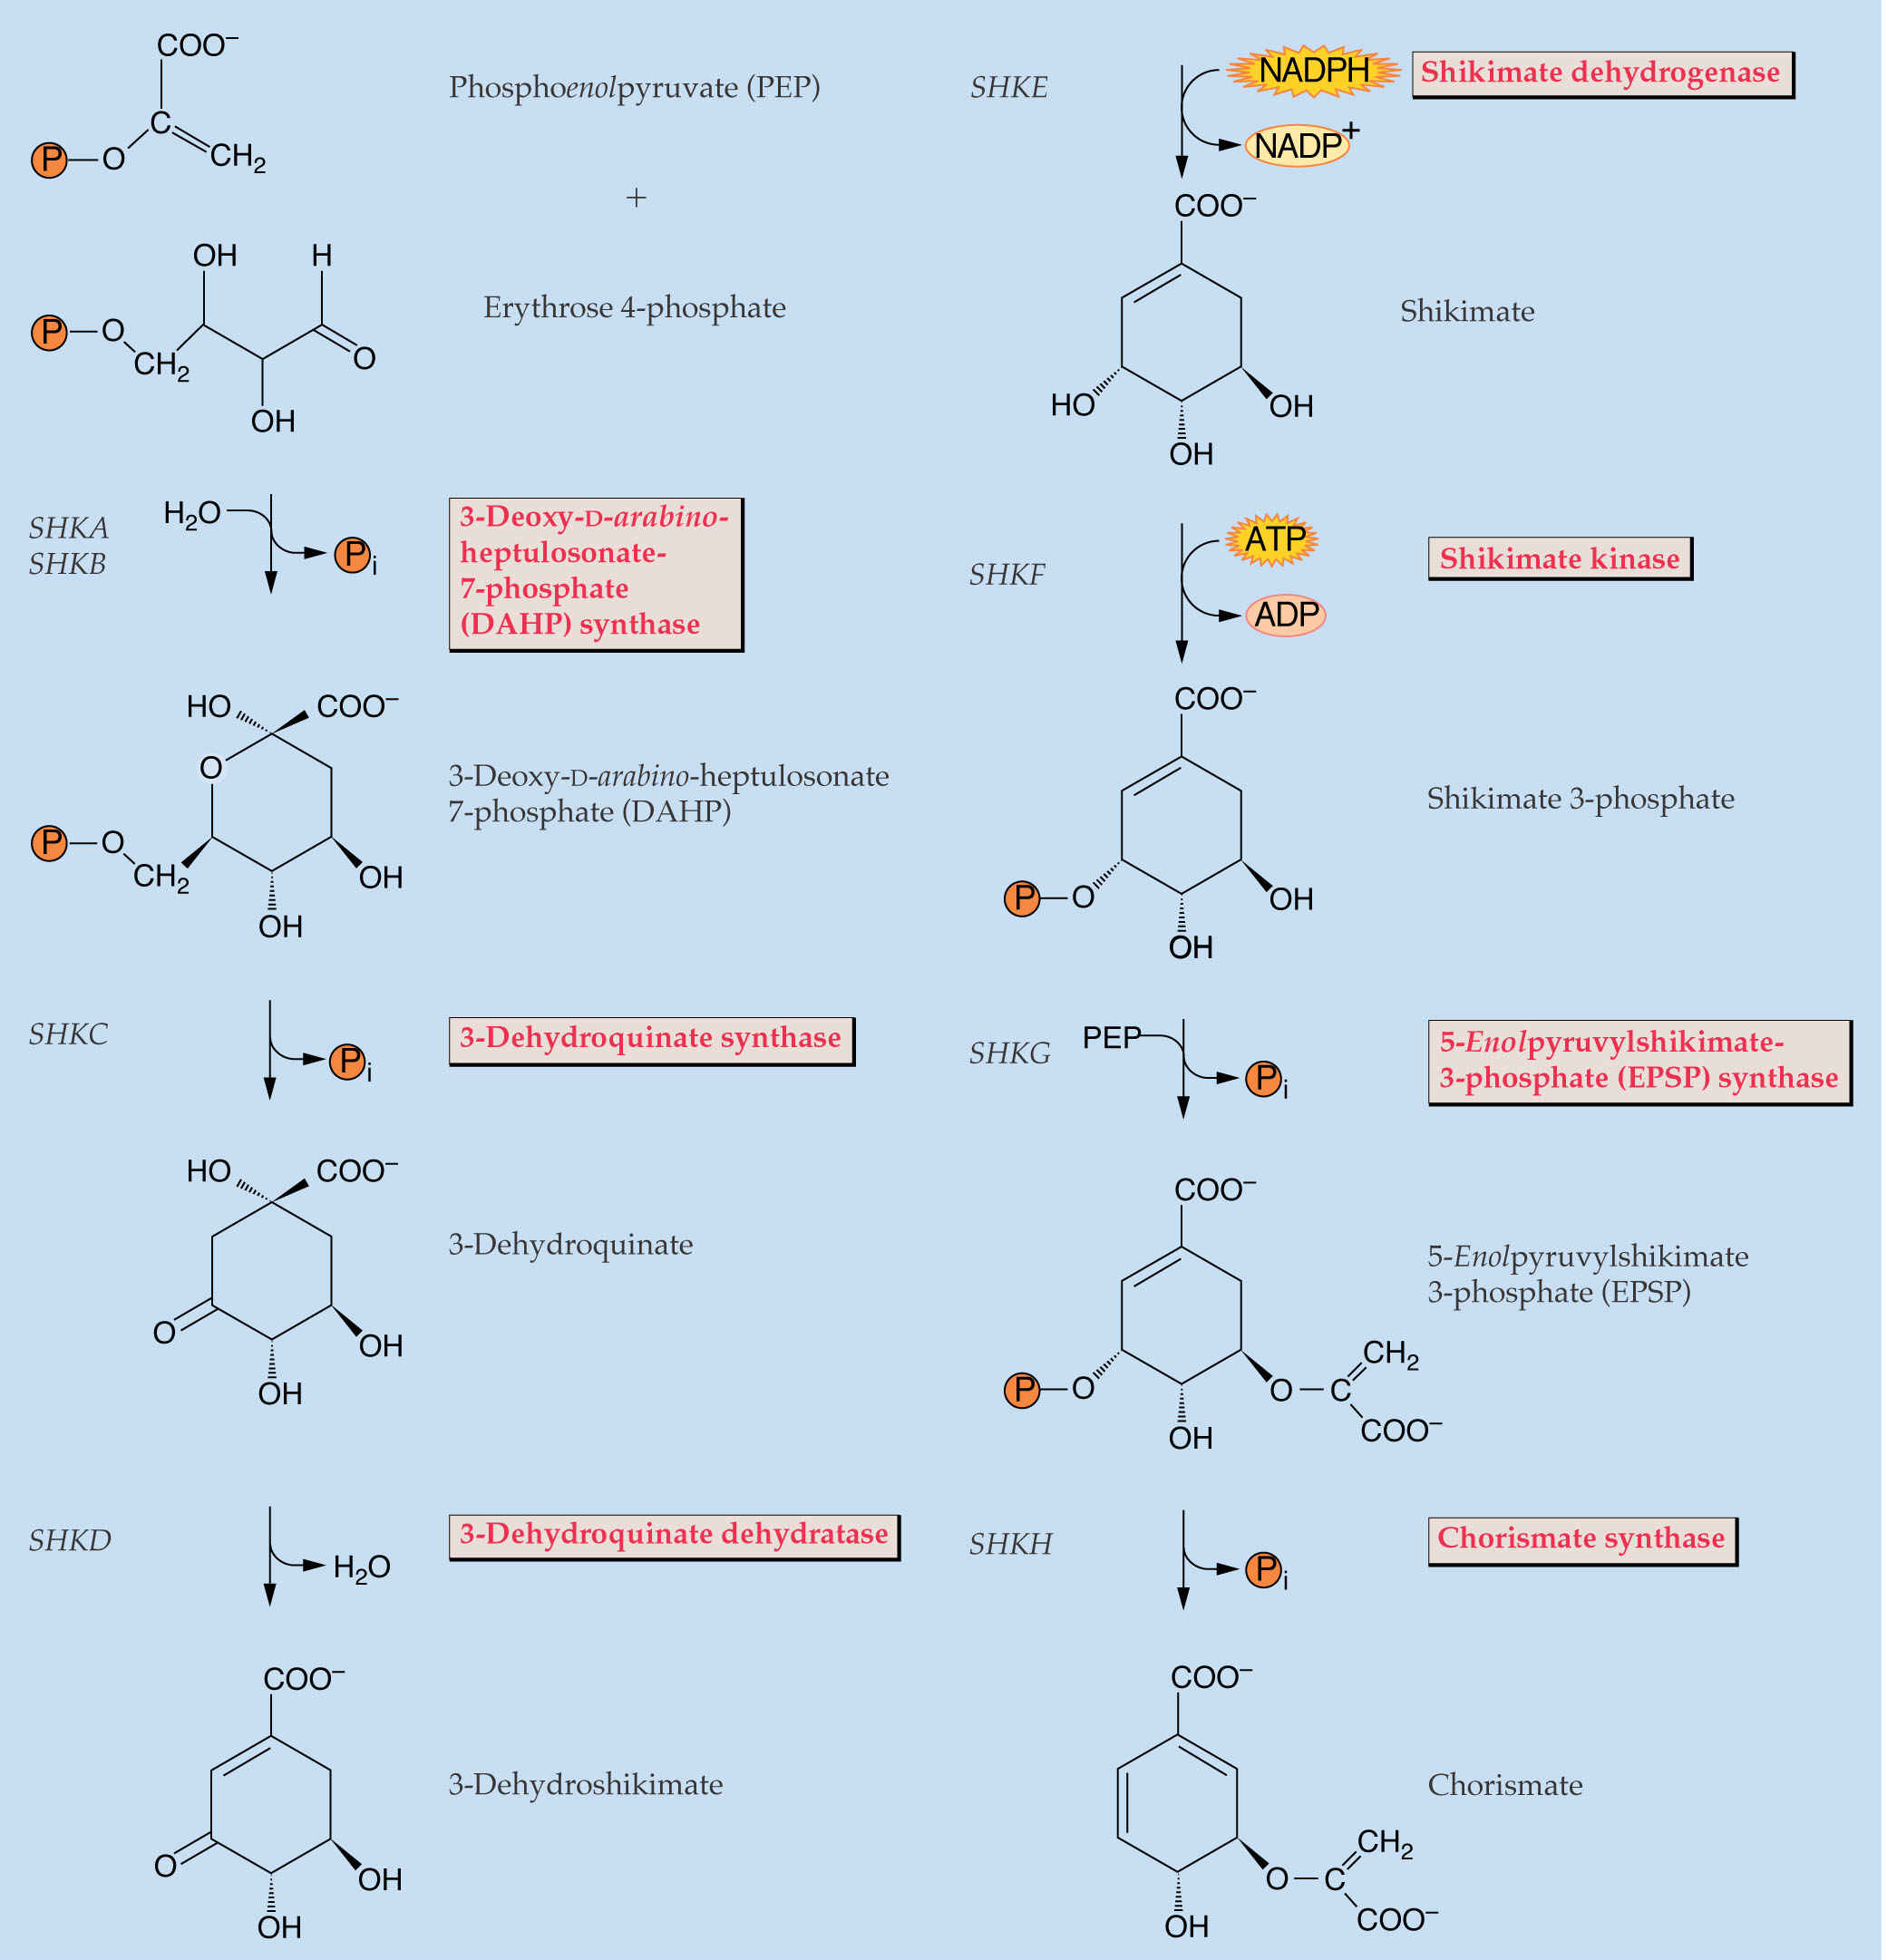 biosynthesis of terpenoids and steroids